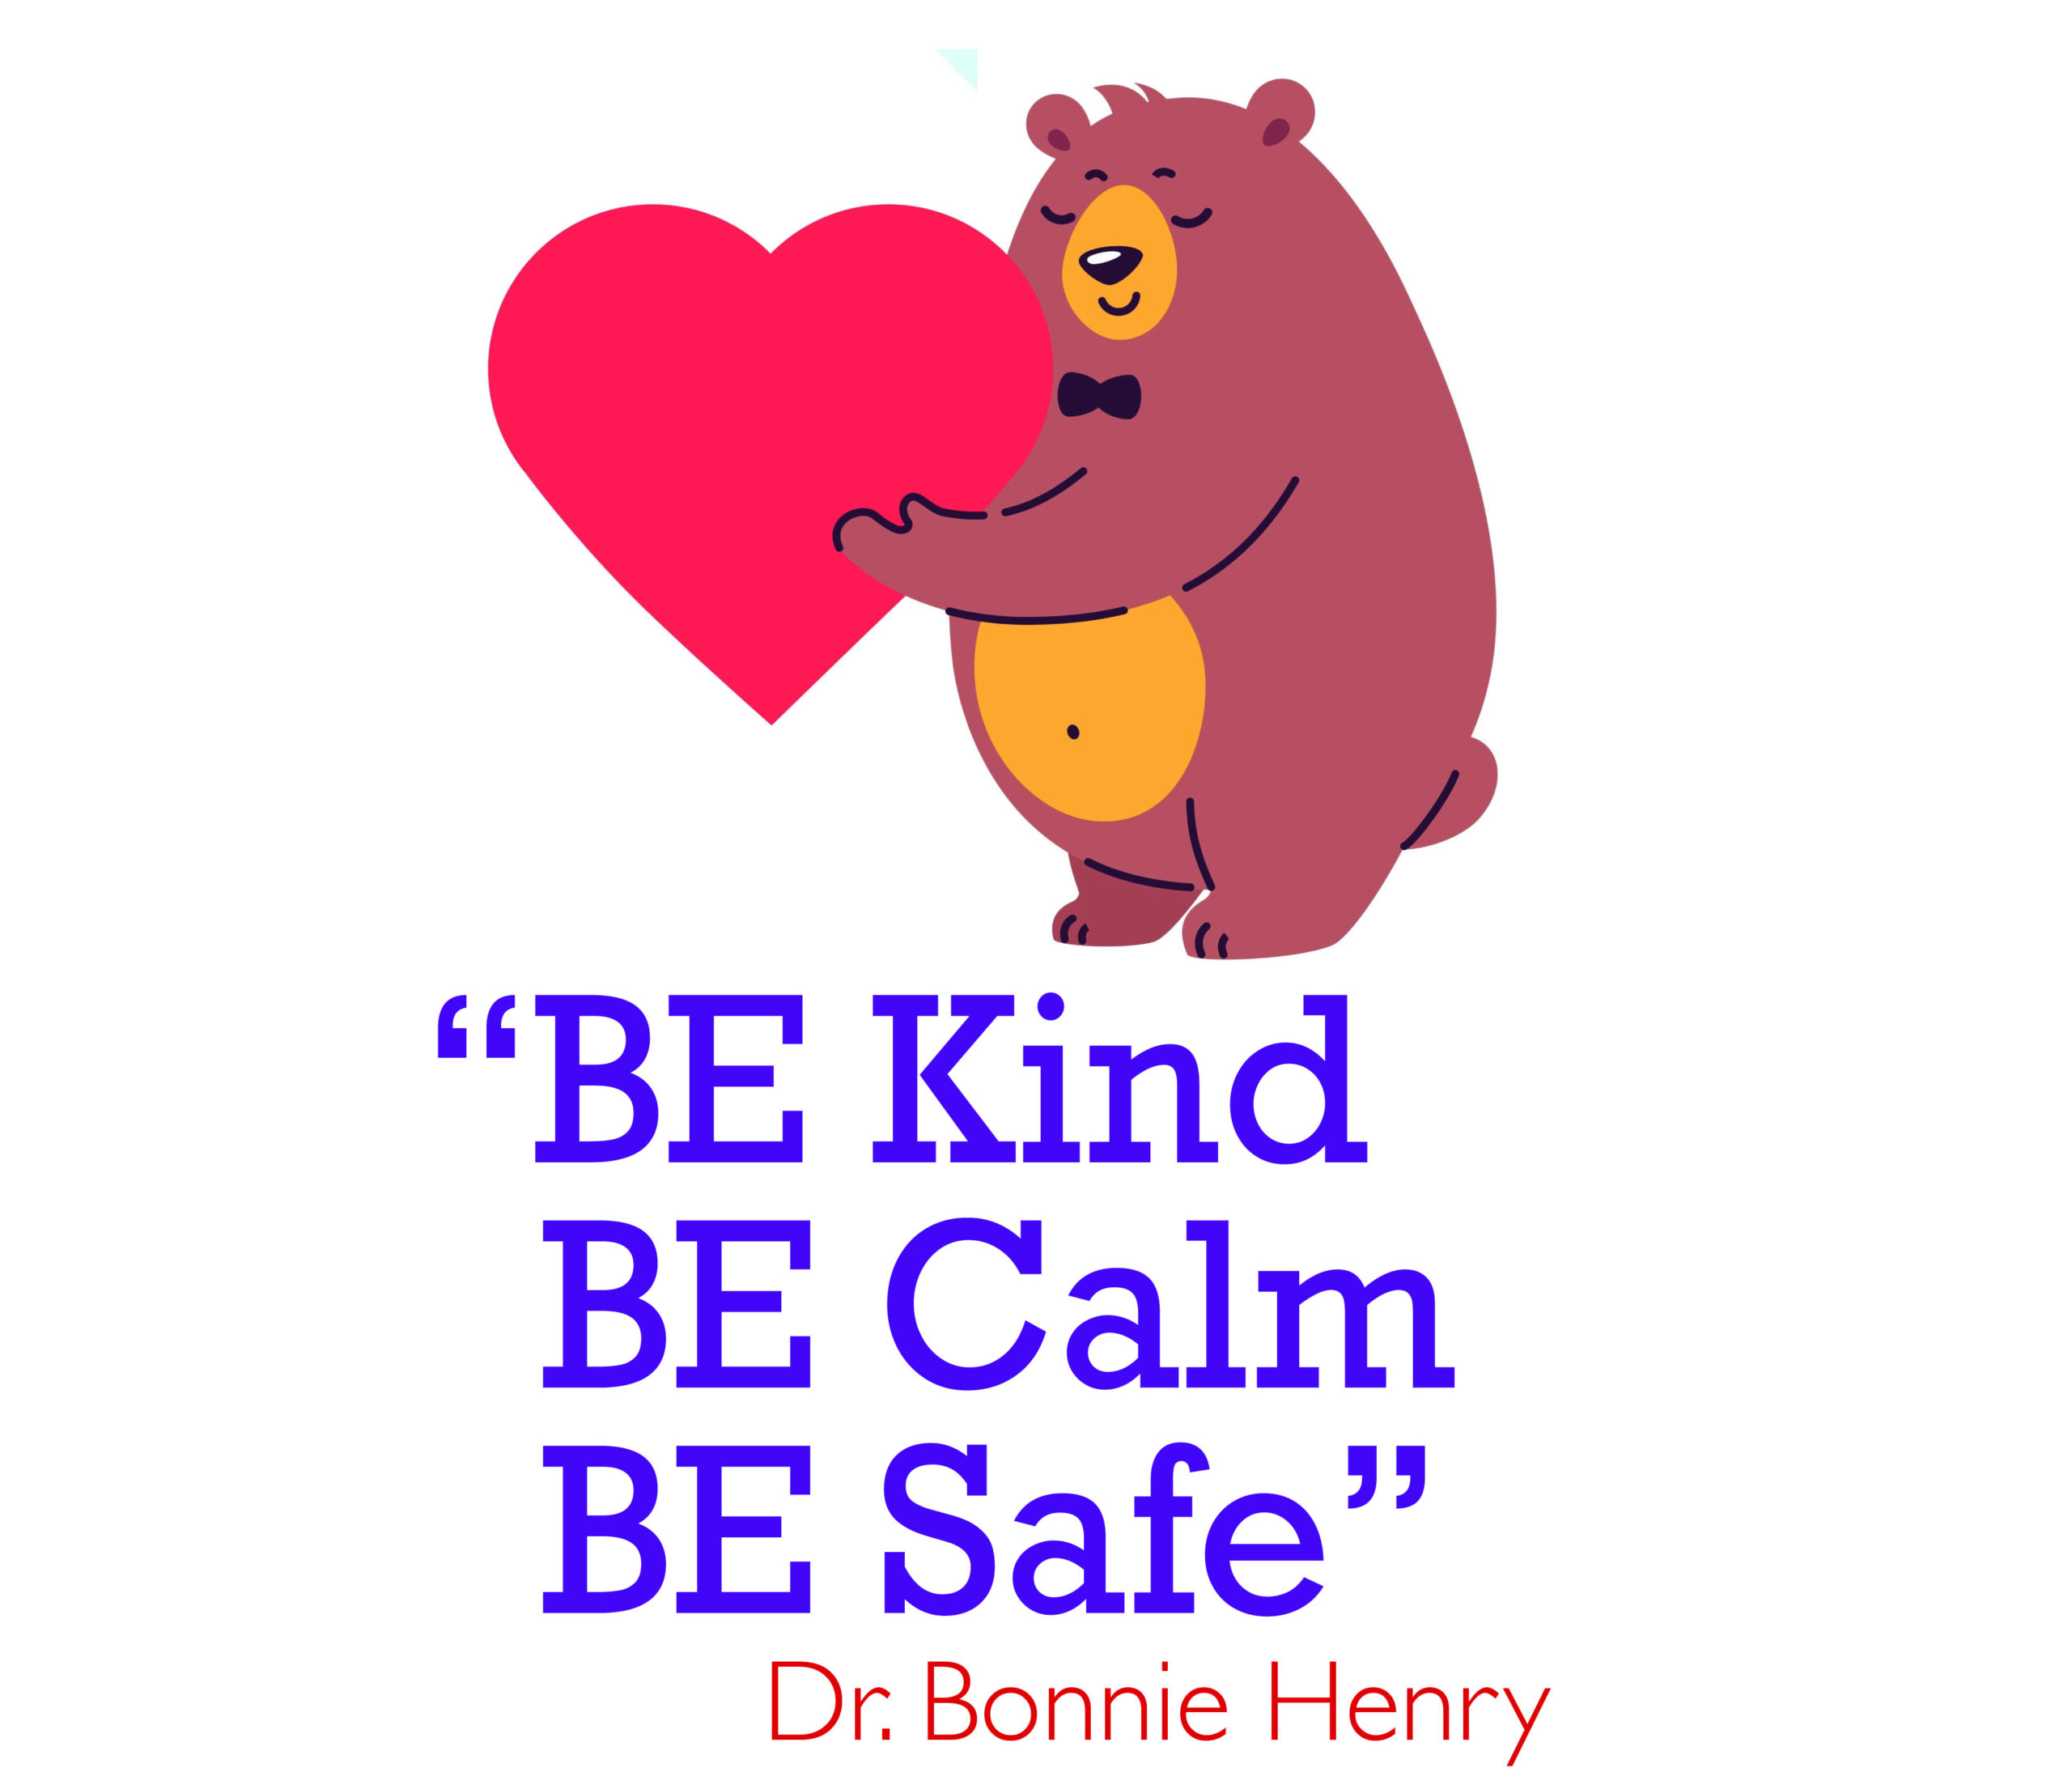 Be Kind. Be Calm. Be Safe.